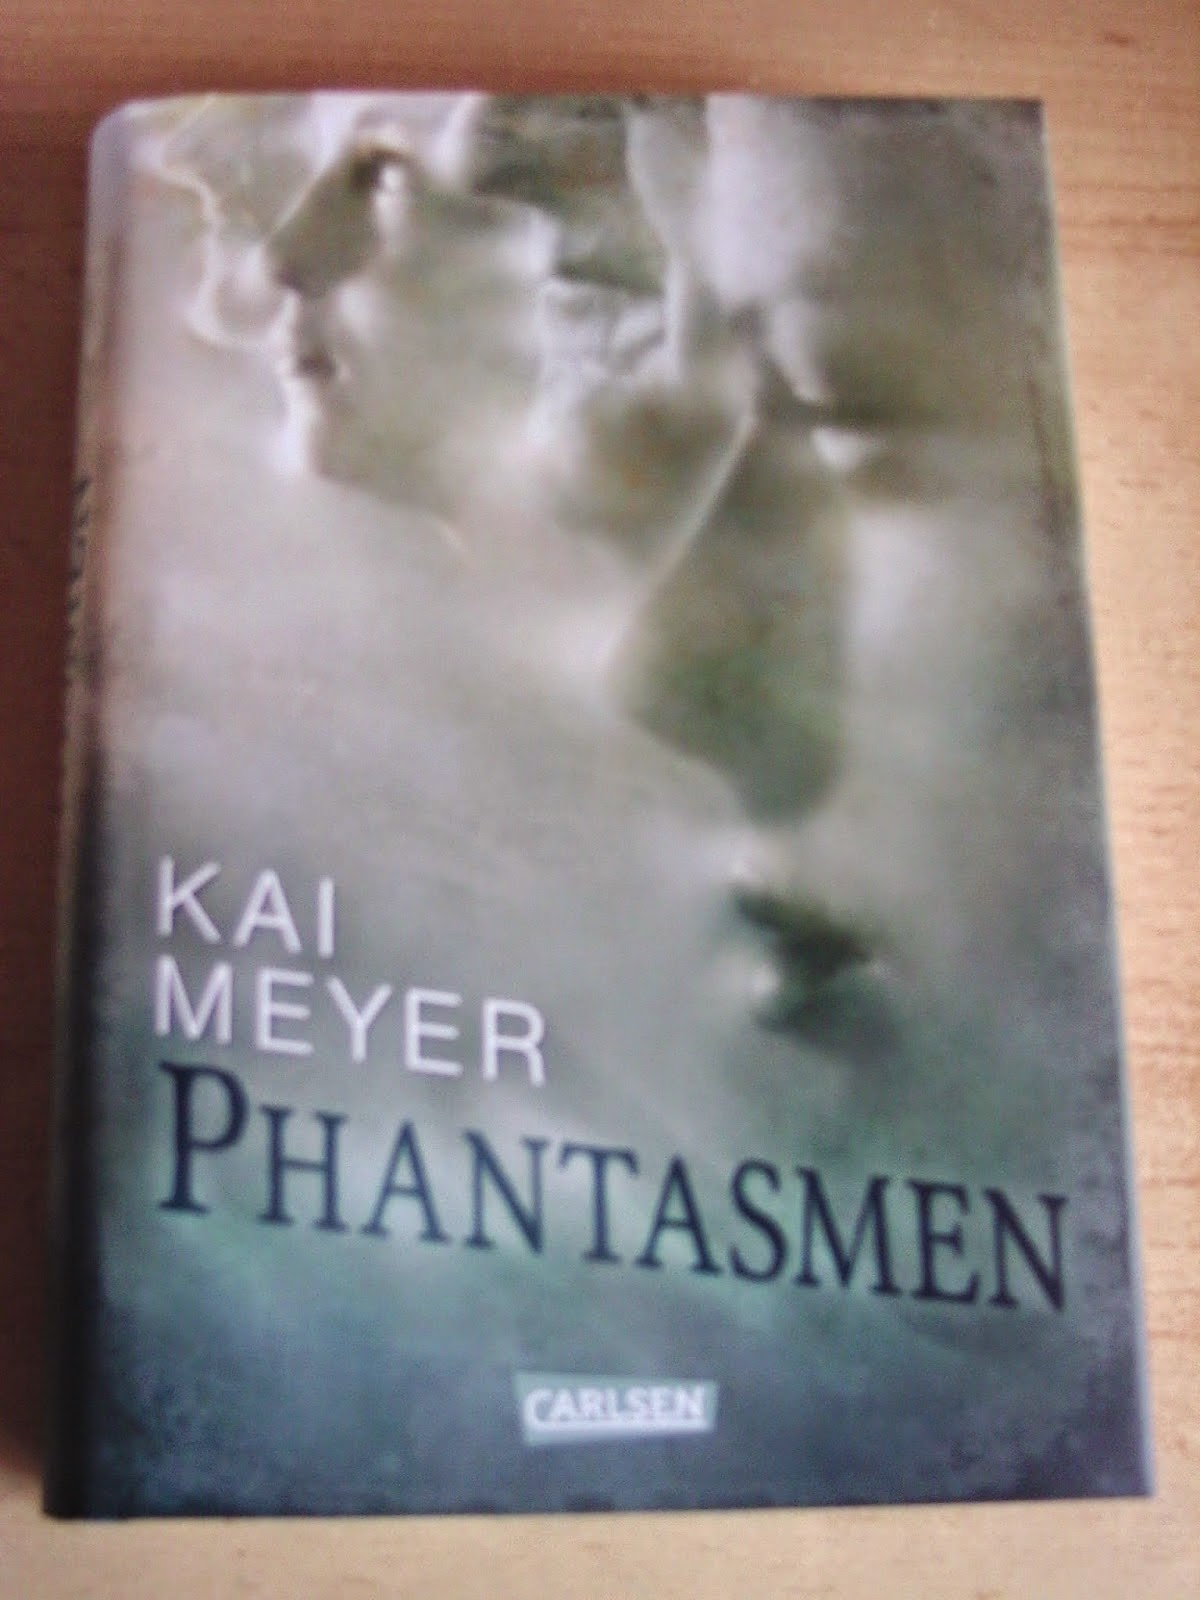 http://www.amazon.de/Phantasmen-Kai-Meyer/dp/3551582920/ref=sr_1_1?s=books&ie=UTF8&qid=1424981901&sr=1-1&keywords=phantasmen